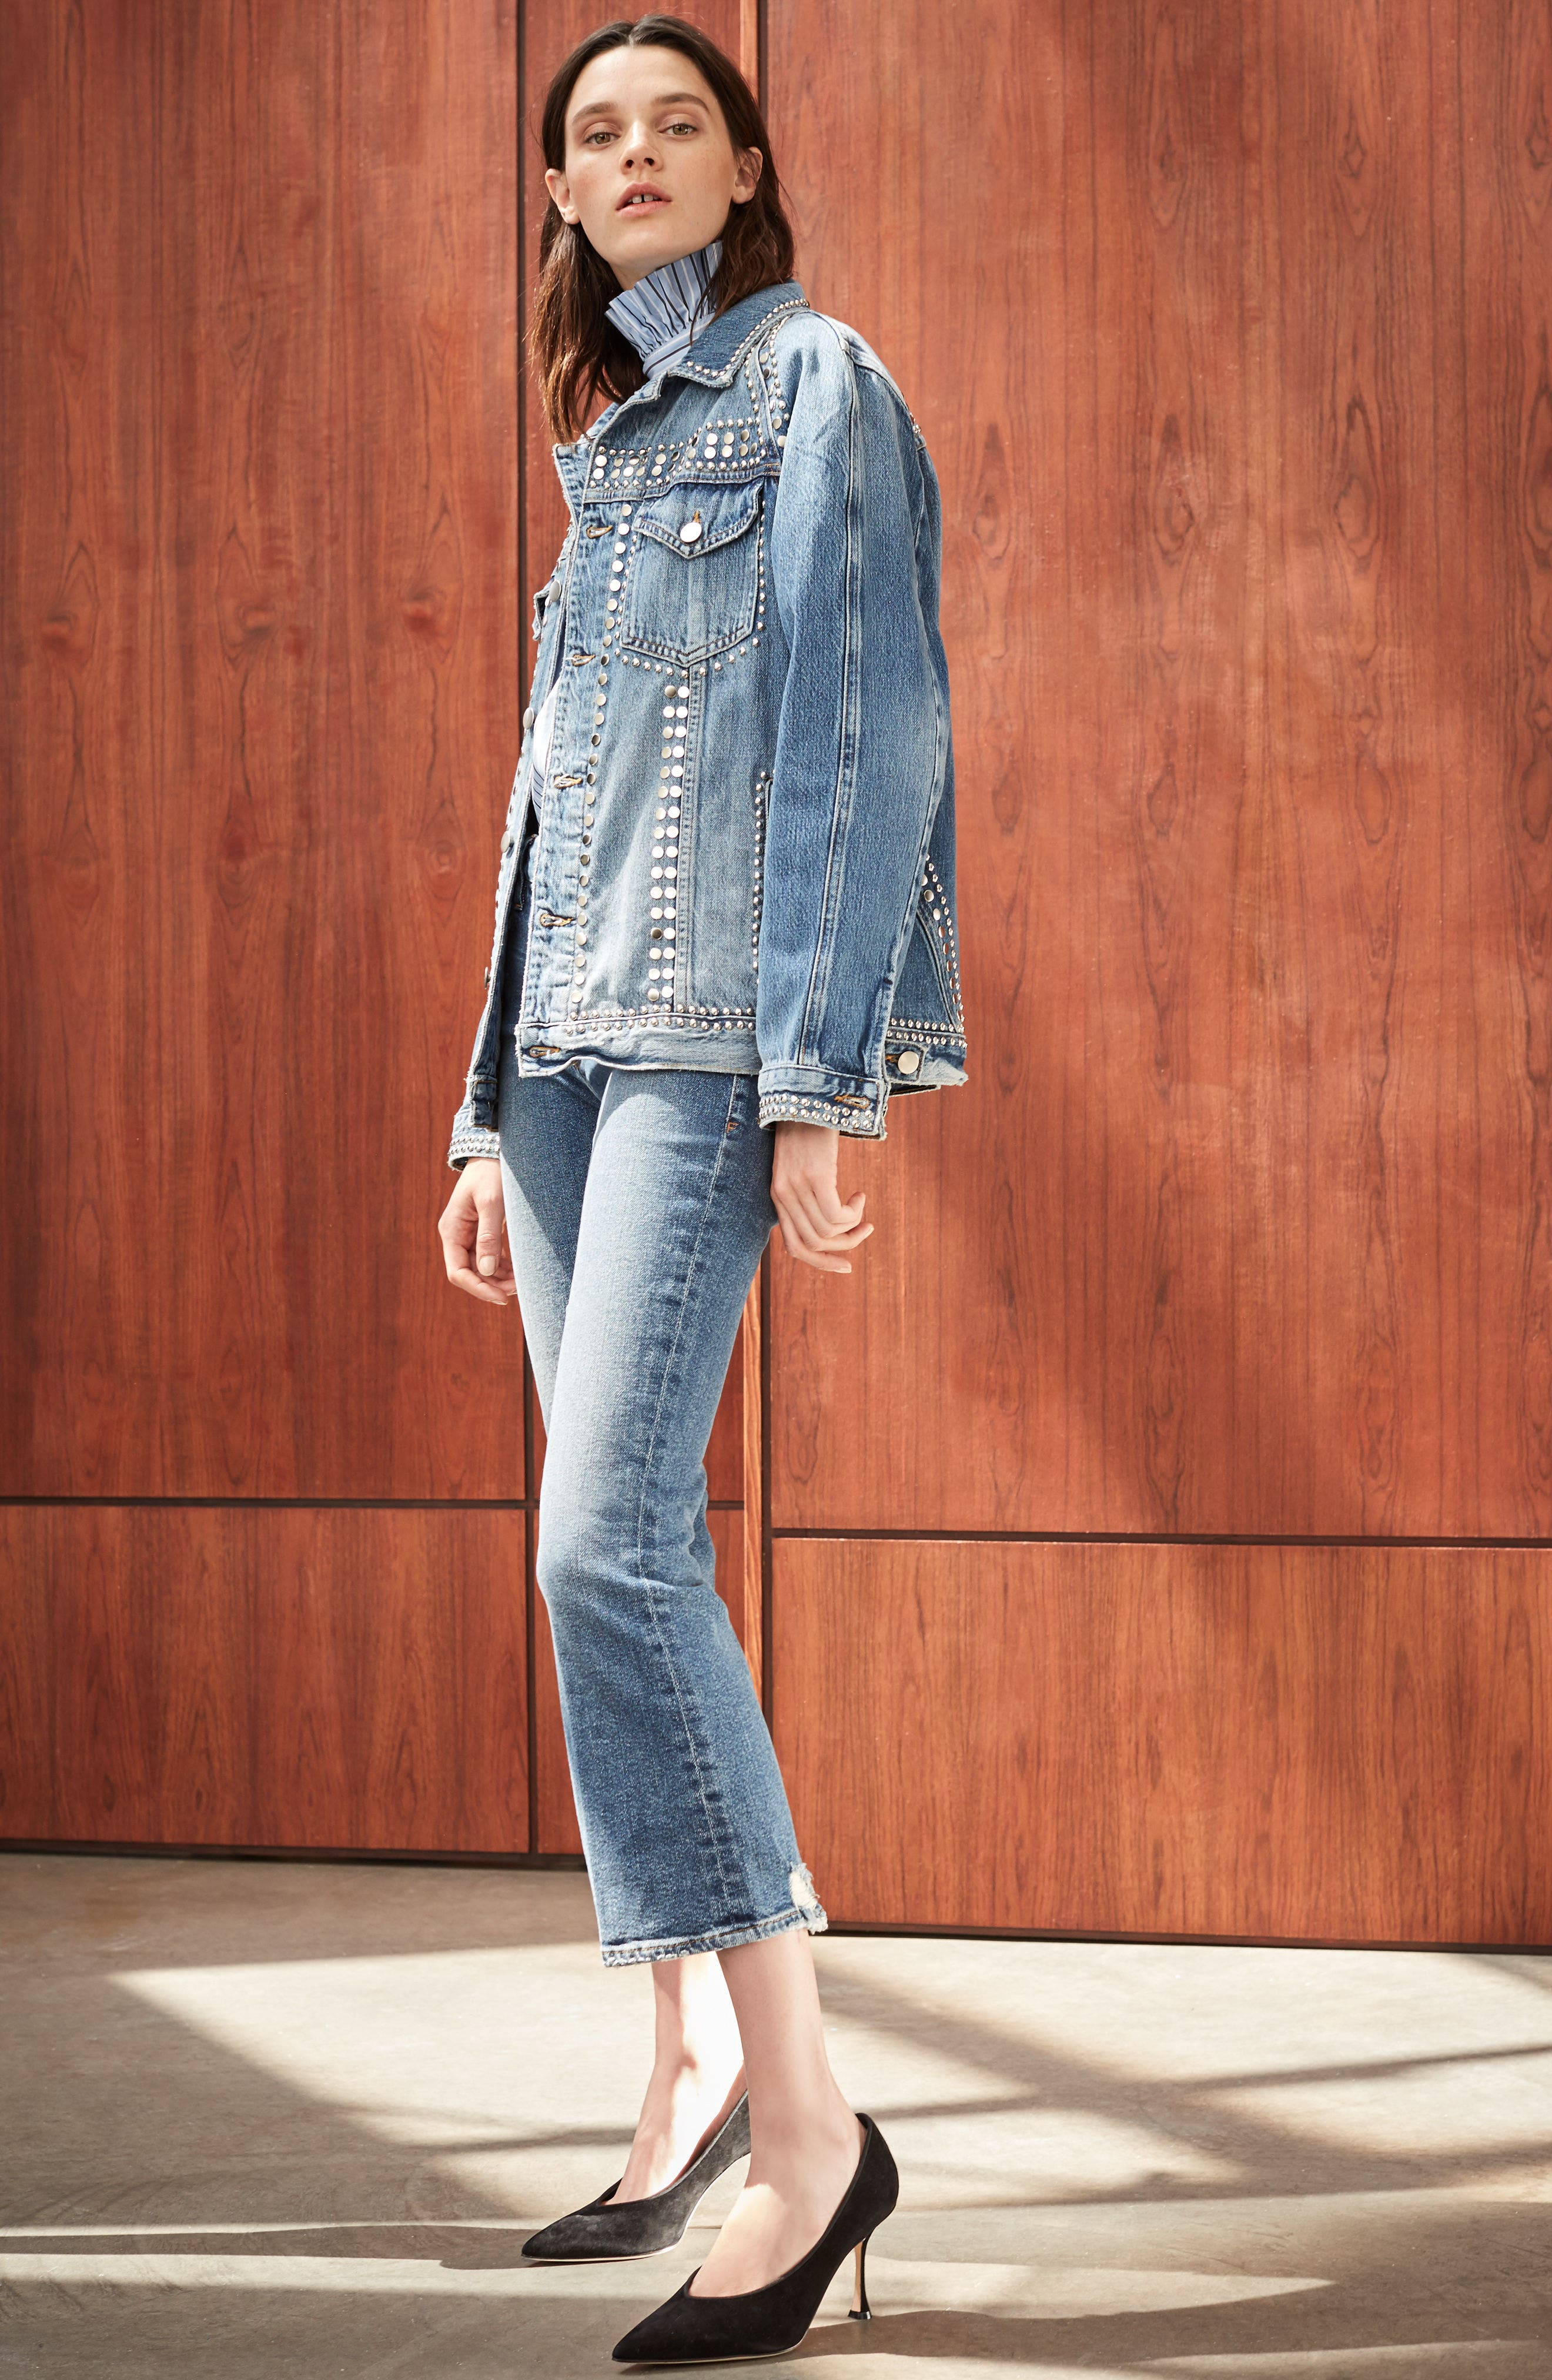 FRAME Jacket, Blouse & Jeans Outfit with Accessories